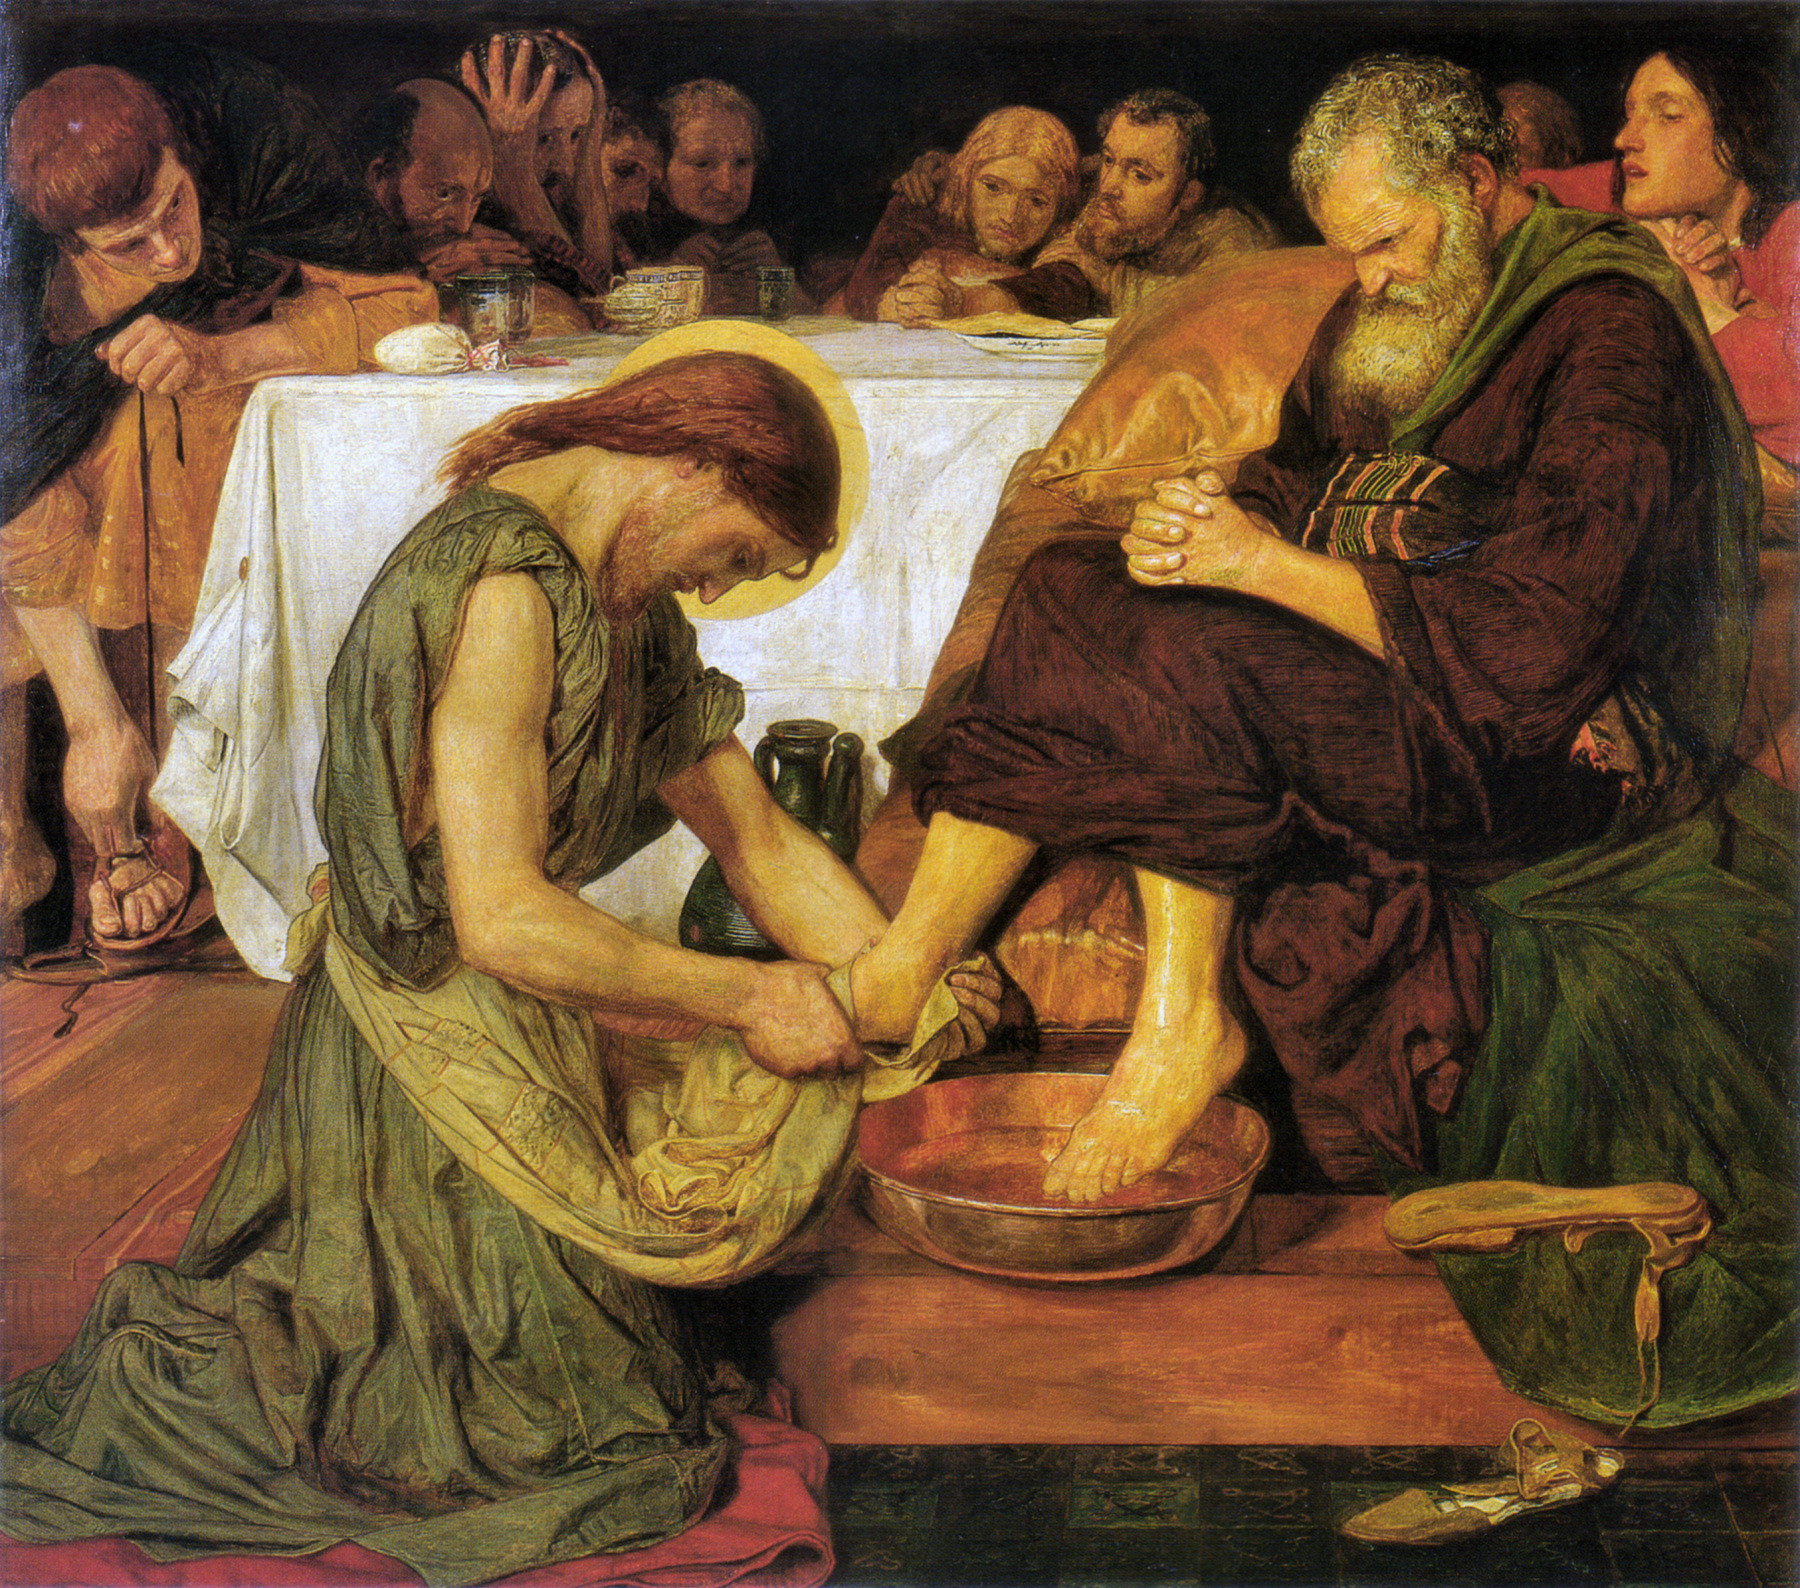 Pirtle Holy Week Art Brown_Jesus Washes Peters Feet